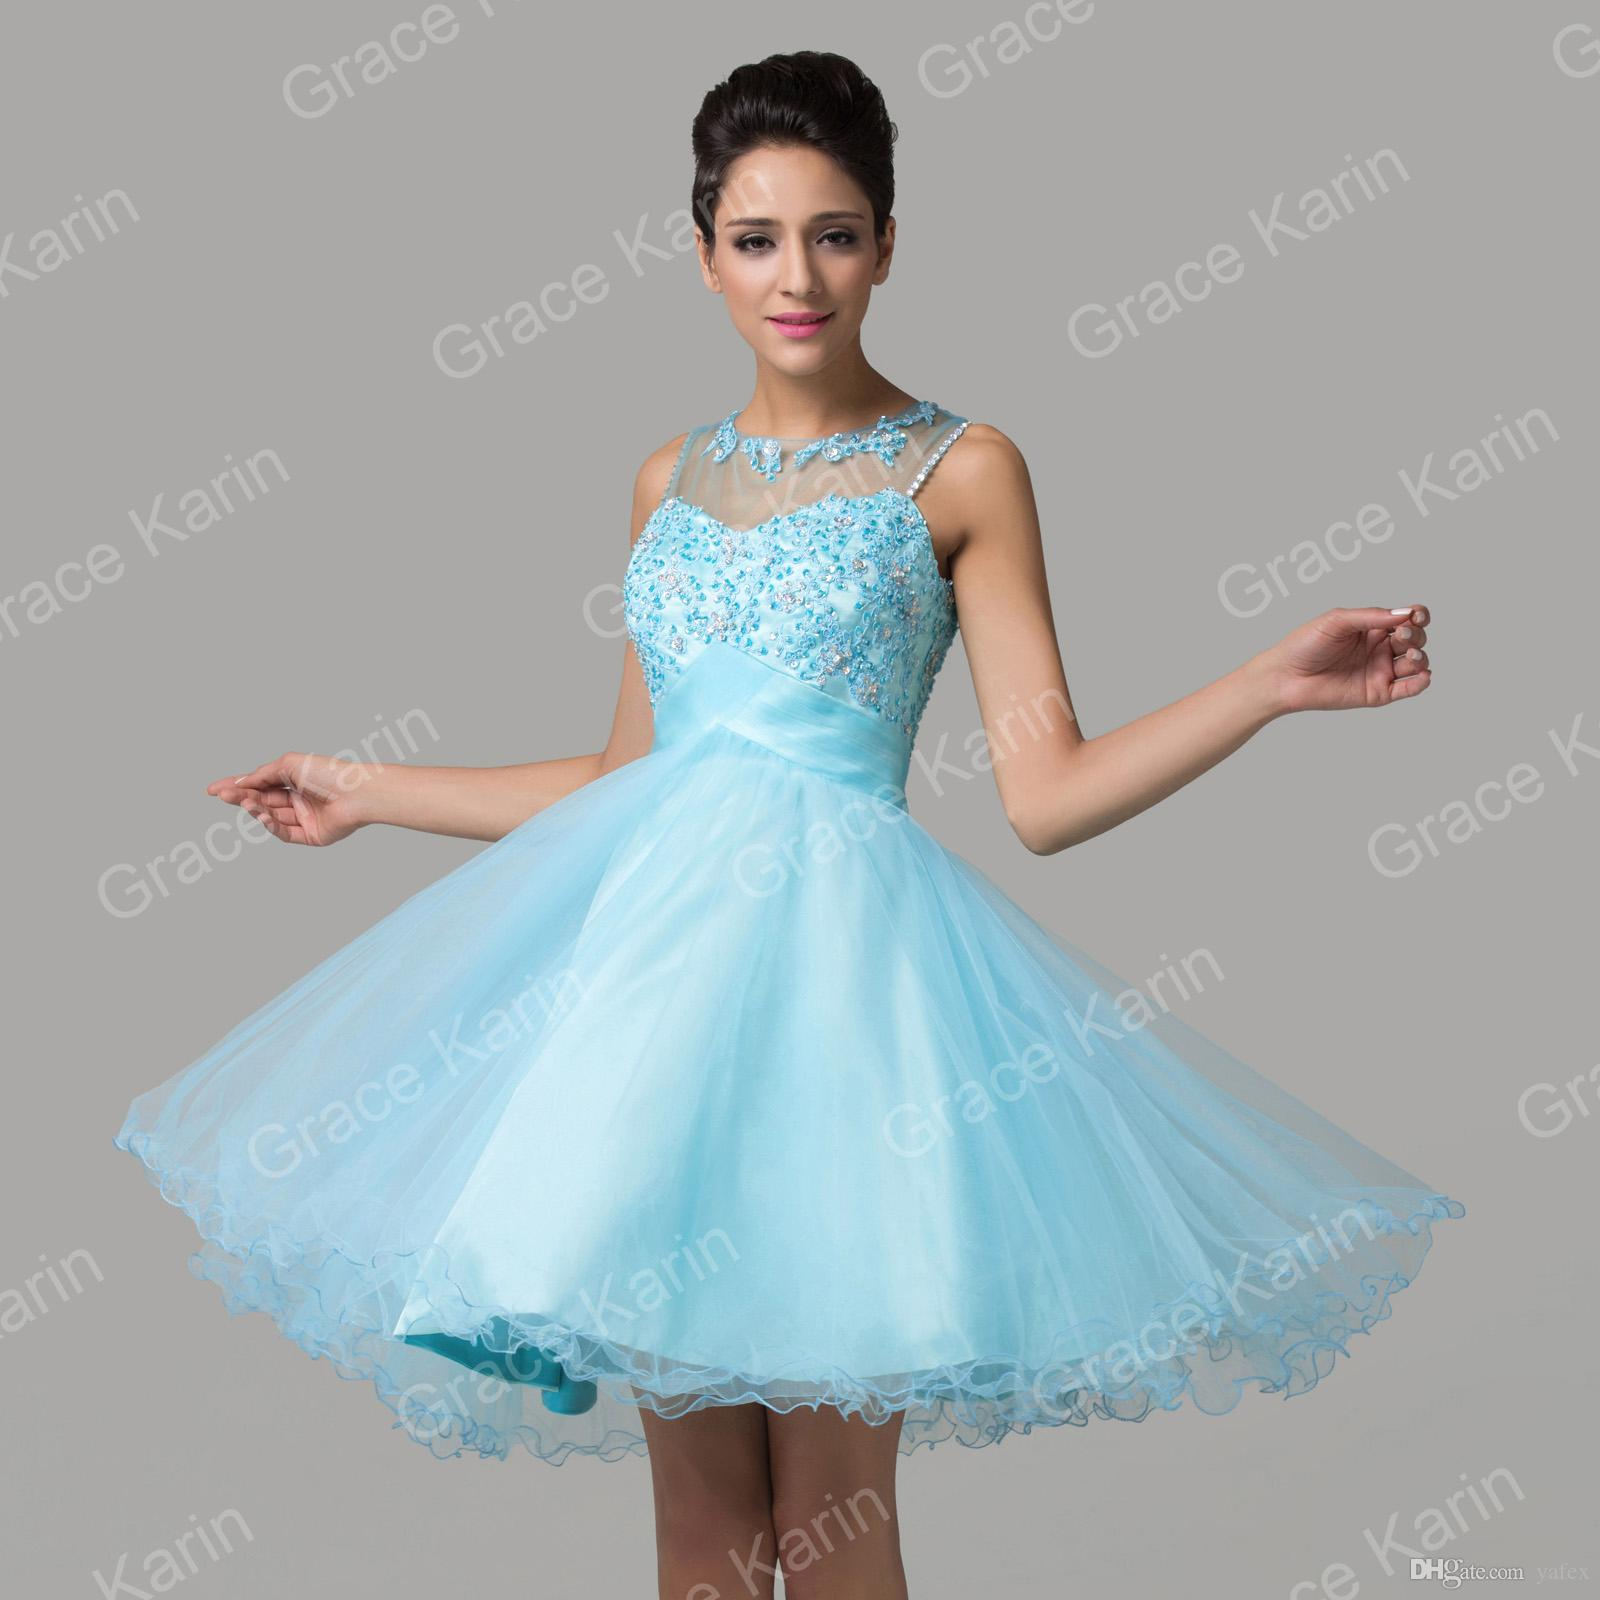 New Popular Design Short Sheer Prom Dresses Crew Neck Appliques ...